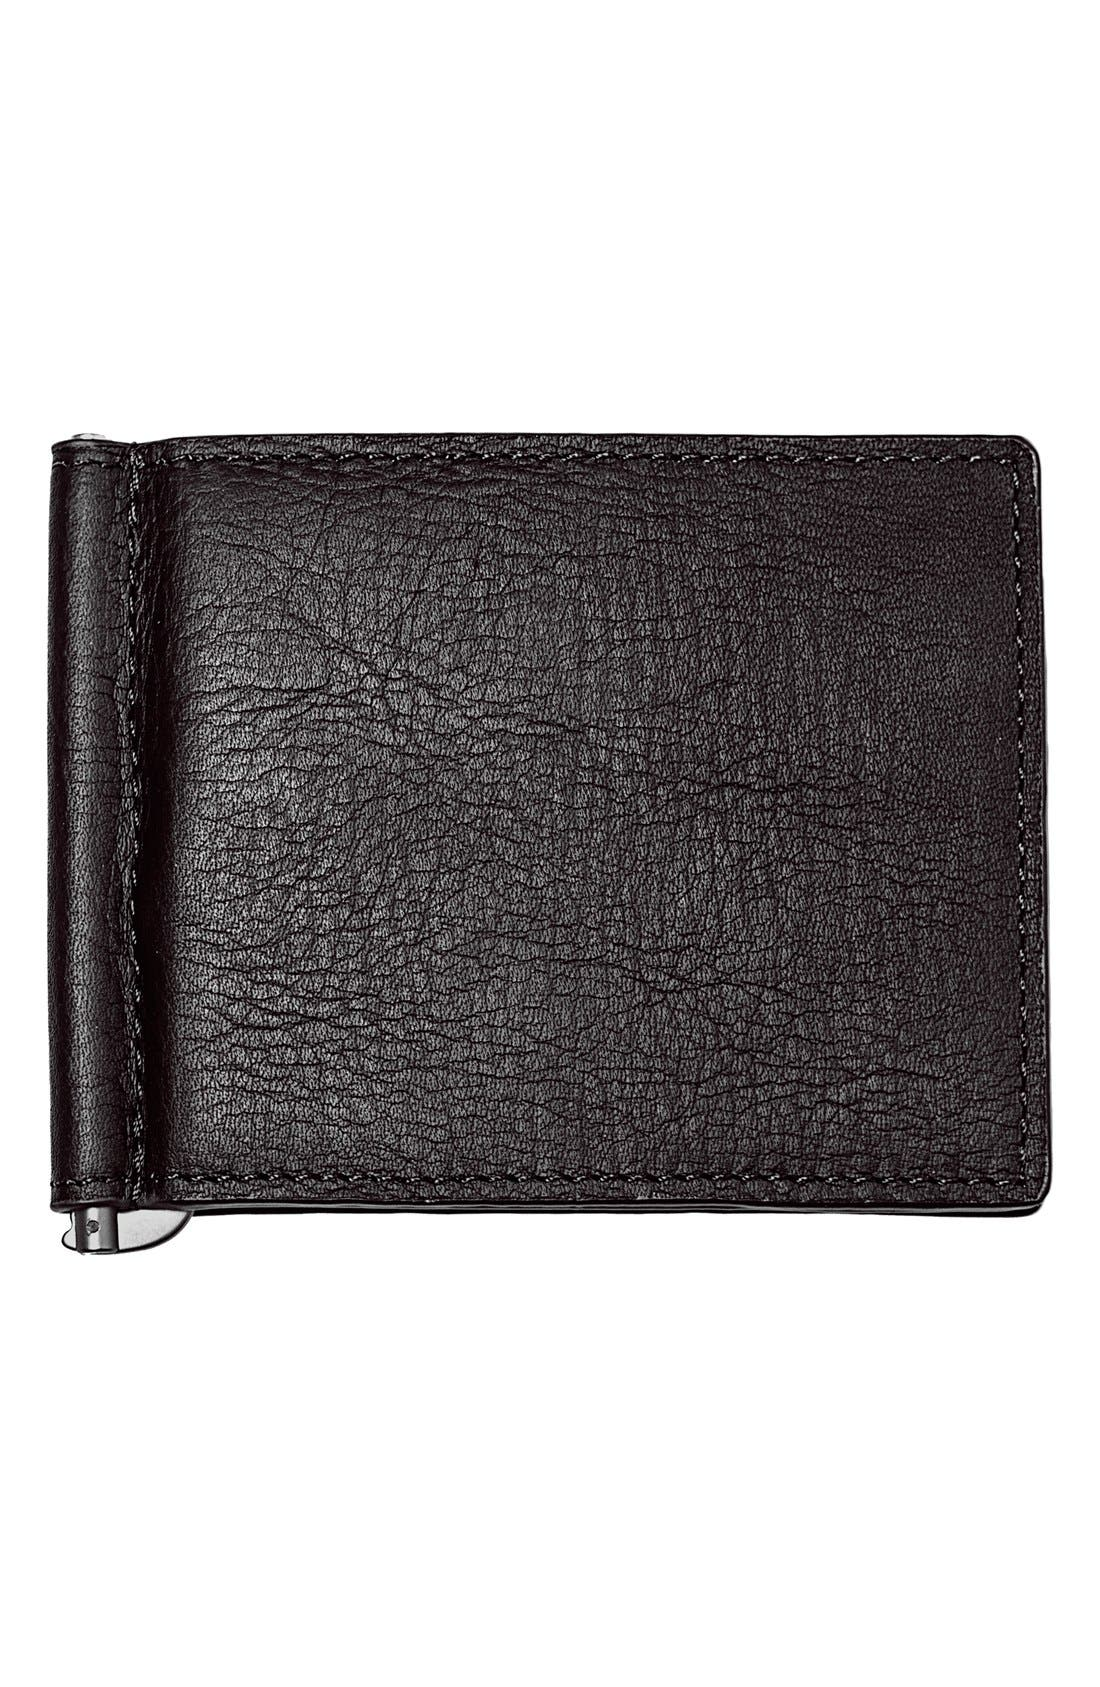 Monogram Leather Wallet & Money Clip,                             Main thumbnail 1, color,                             BLACK - BLANK